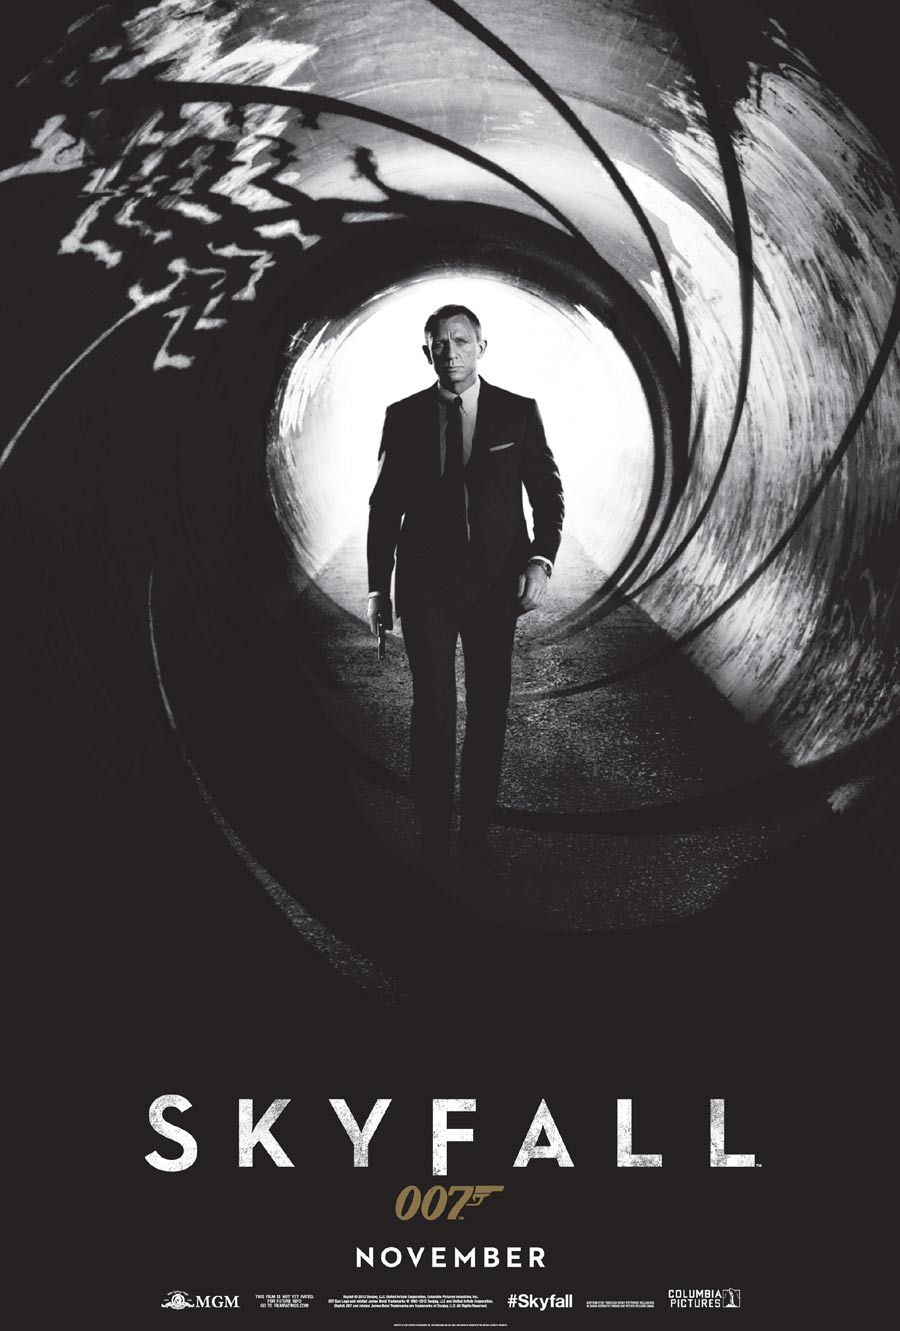 James bonds skyfall poster i would even put it in a large ornate frame and let my guy hang it in our bedroom so thats the first thing he would see